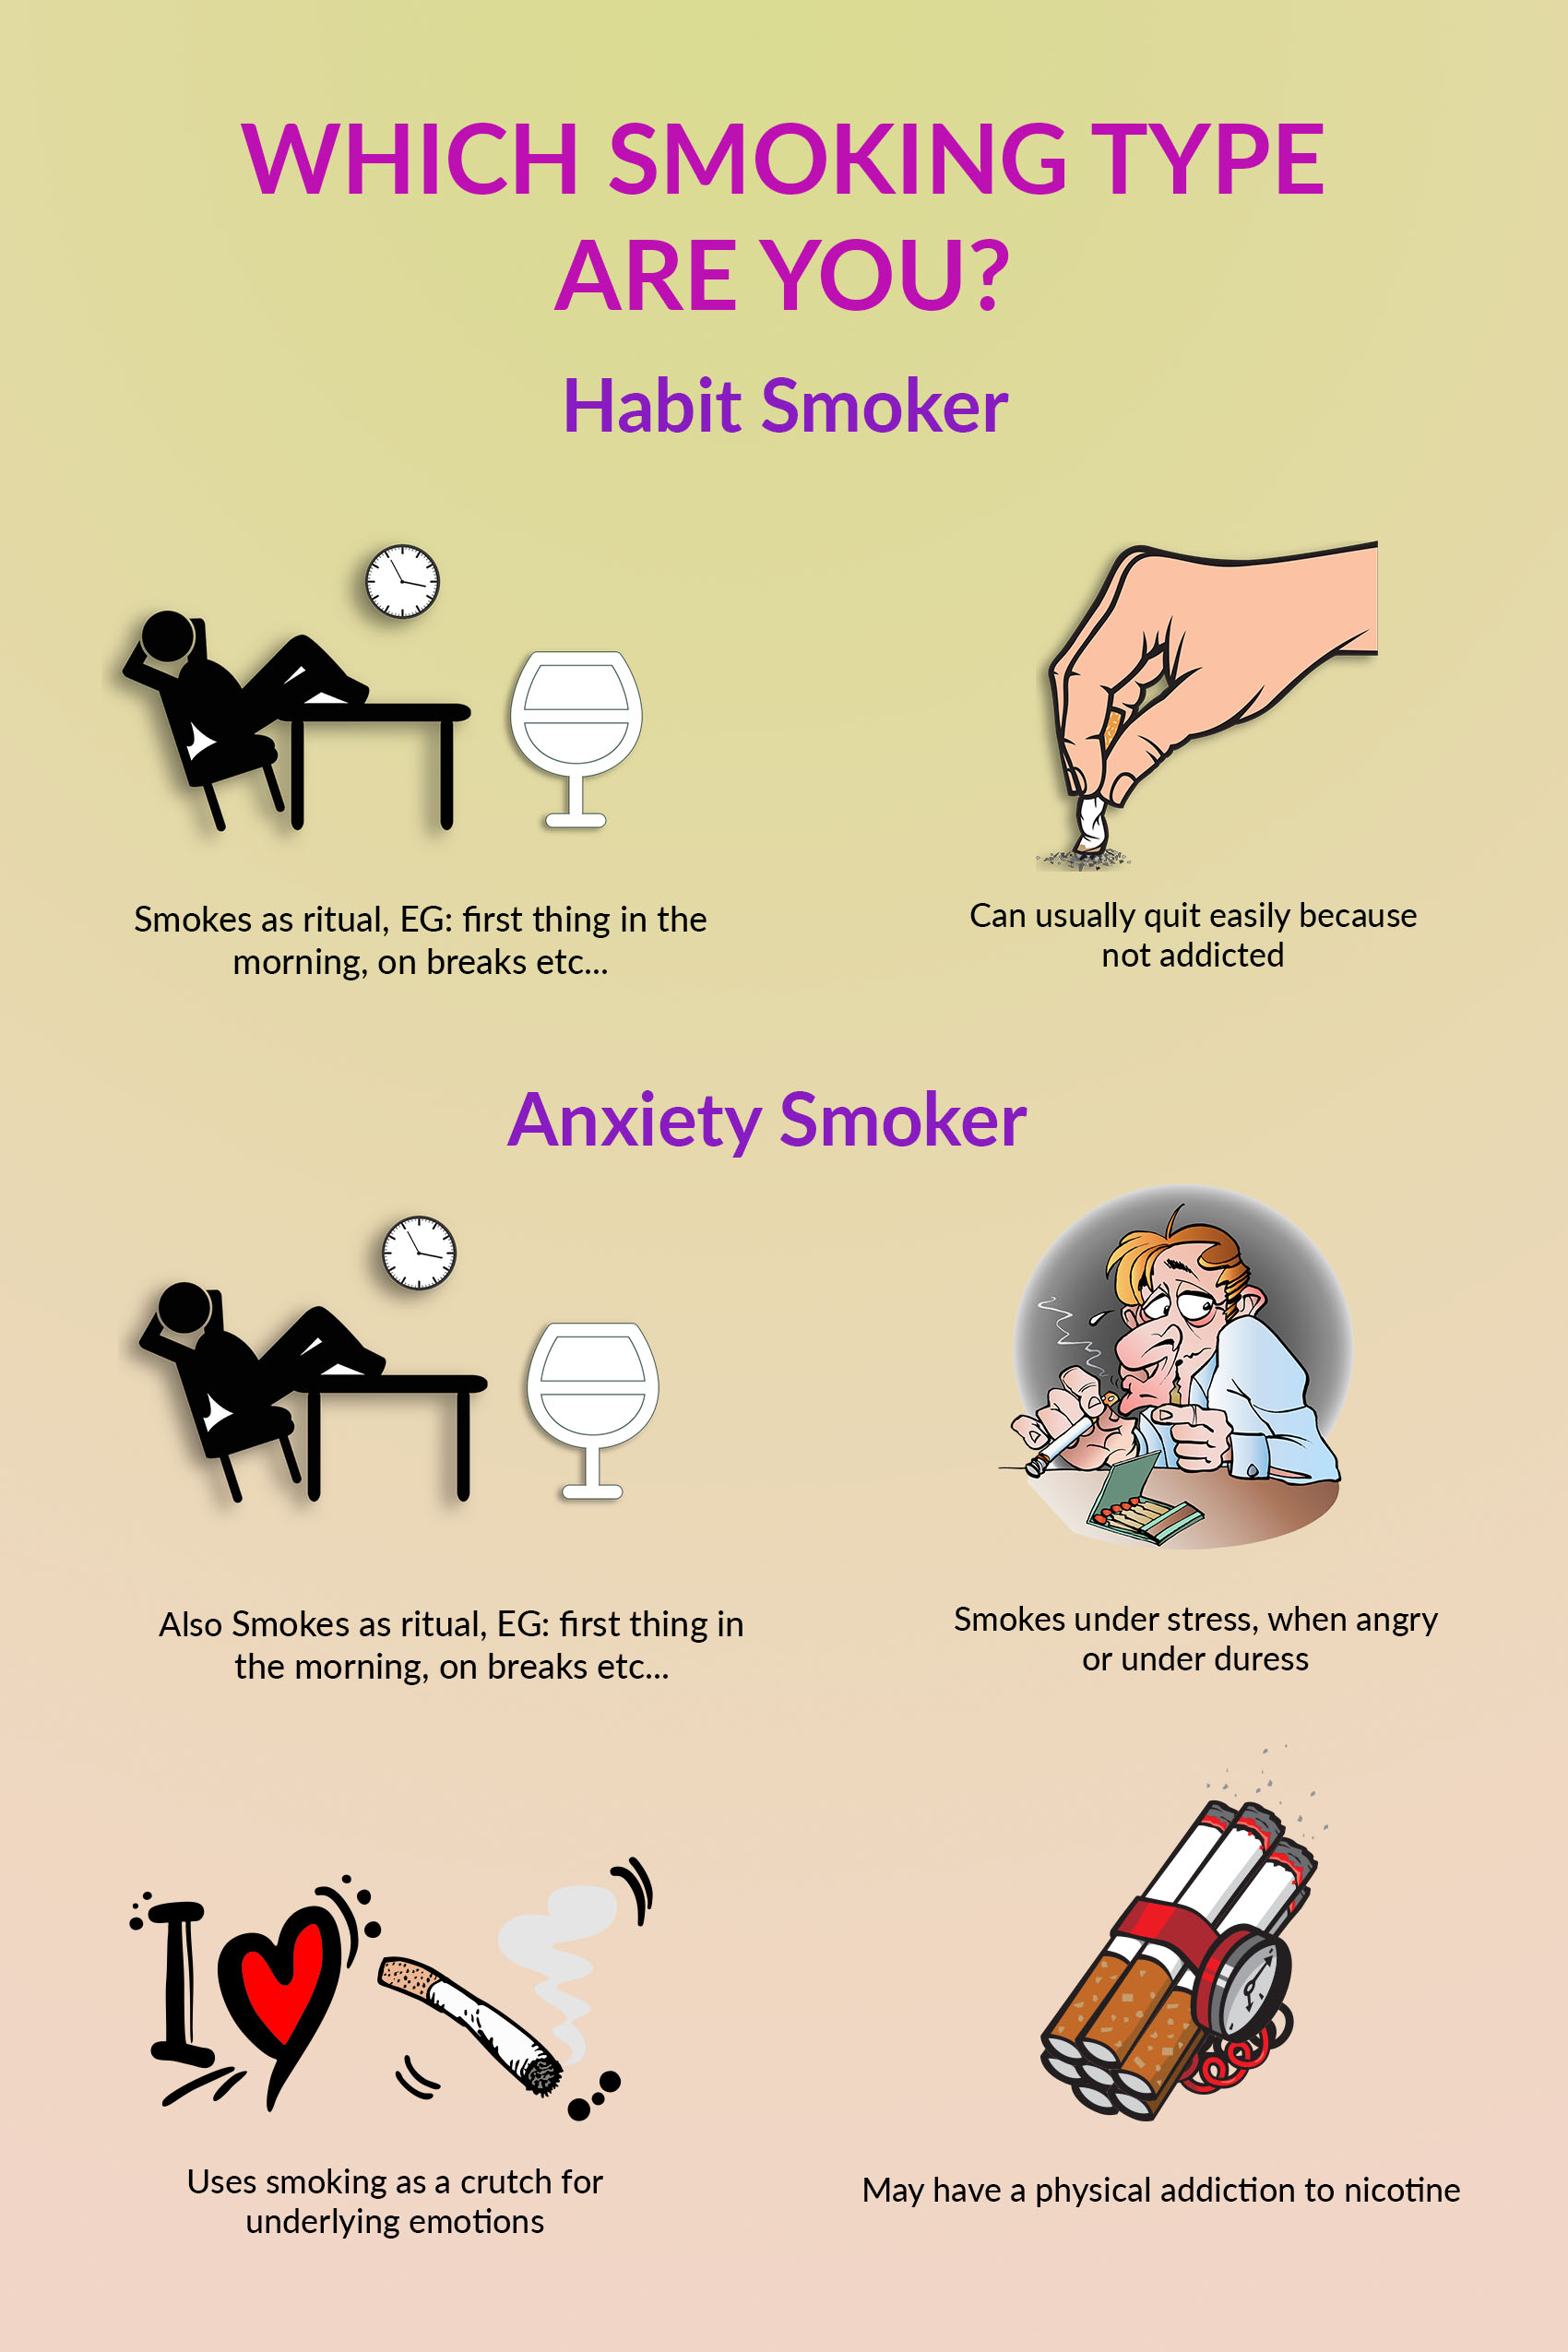 Learn the difference between the two types of smoker